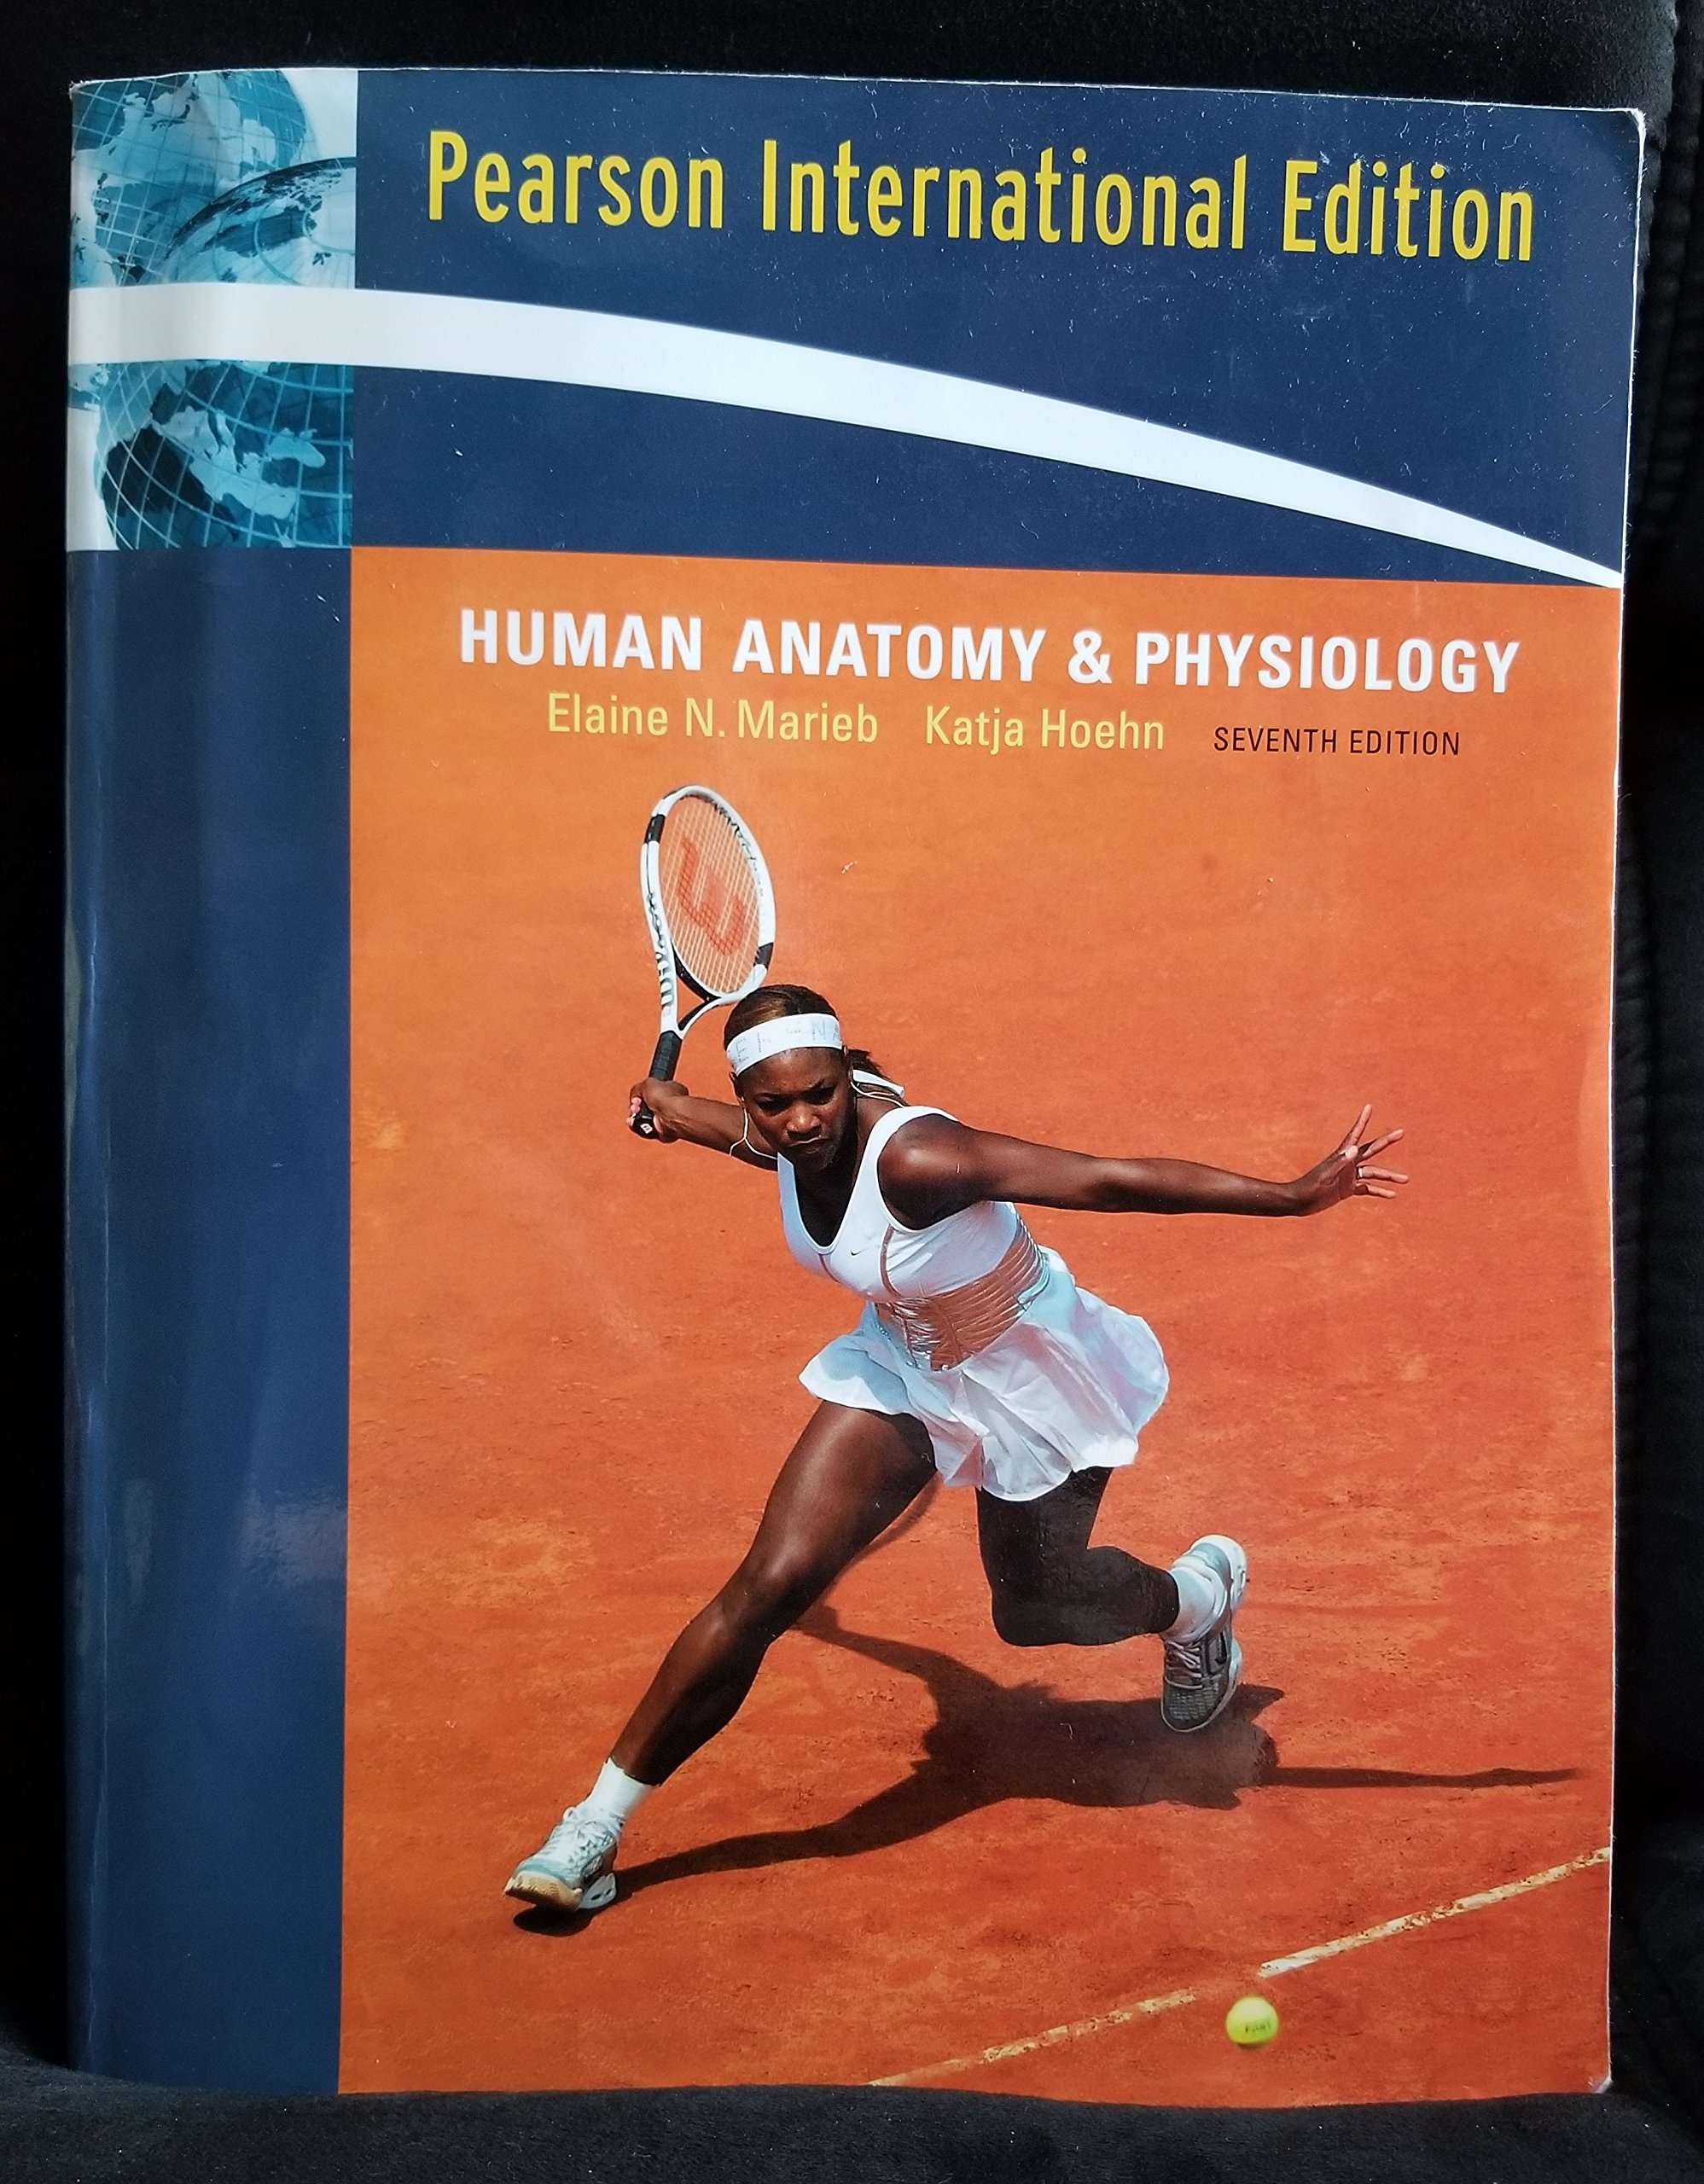 Human Anatomy and Physiology 7th Edition: Elaine Nicpon Marieb ...